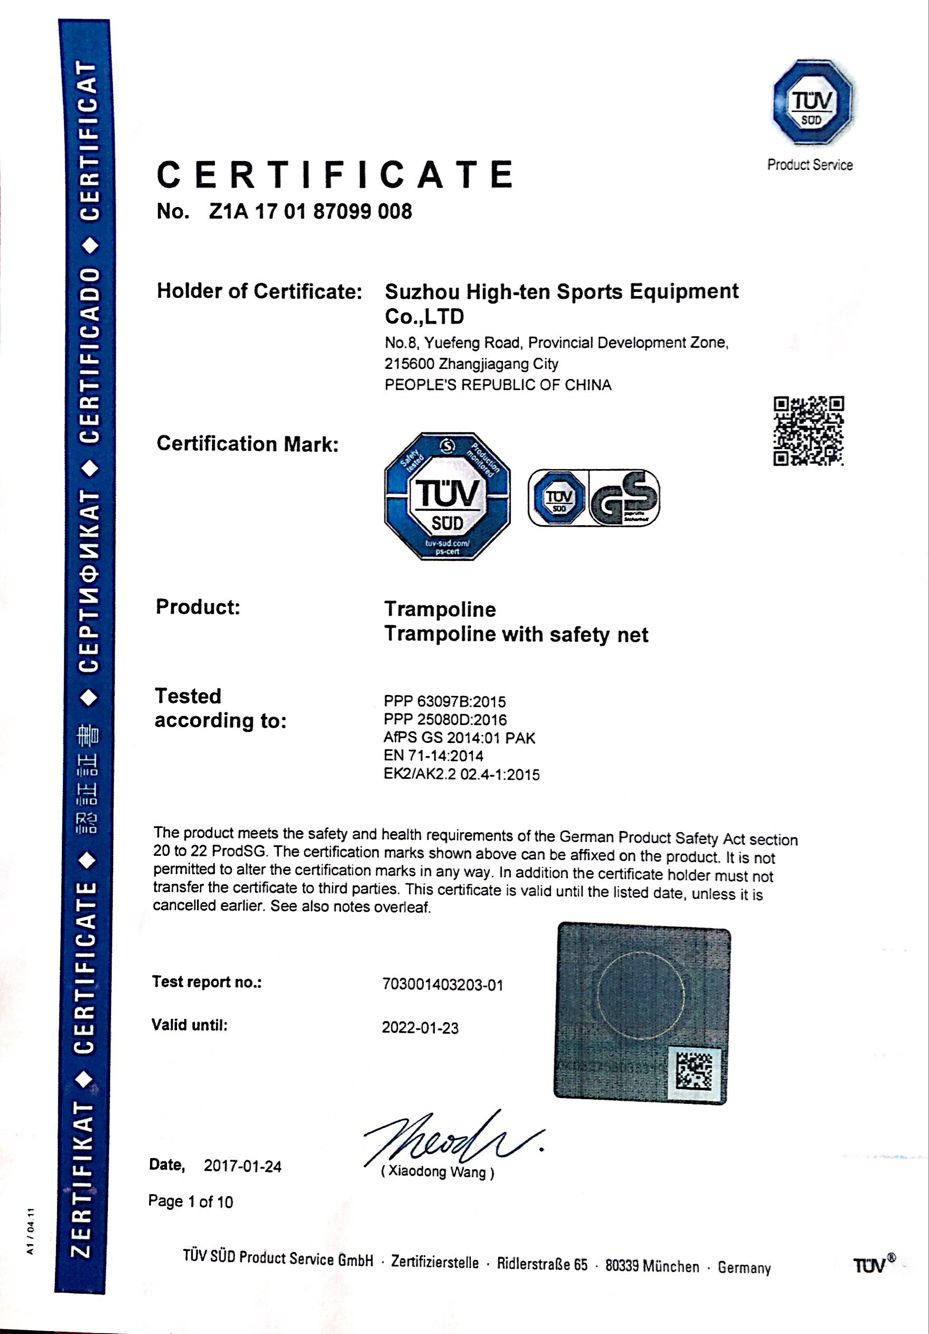 The newest GS certificate for big trampoline